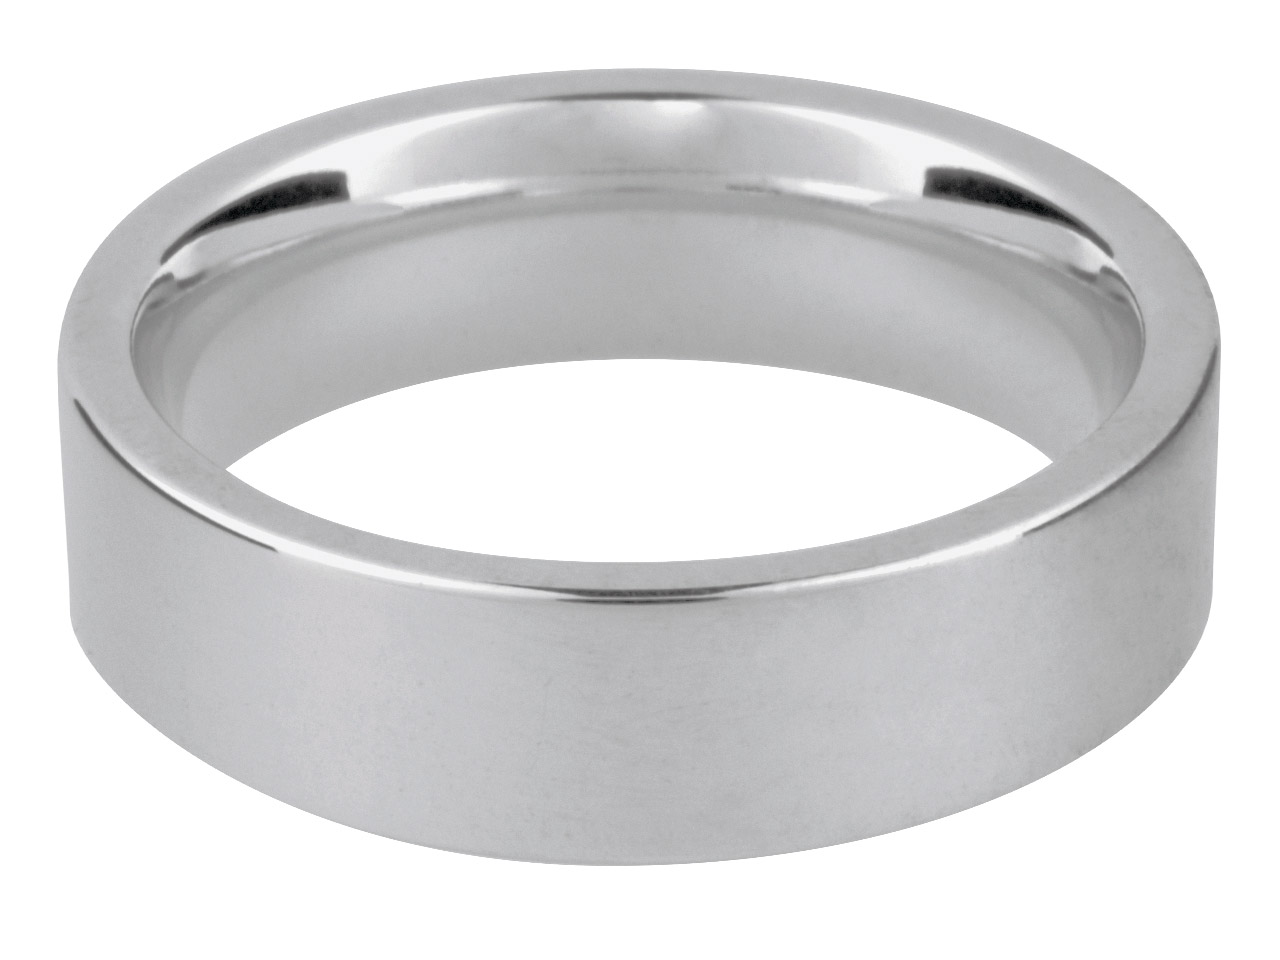 Platinum Easy Fit Wedding Ring     4.0mm P 8.7gms Heavy Weight        Hallmarked Wall Thickness 1.77mm